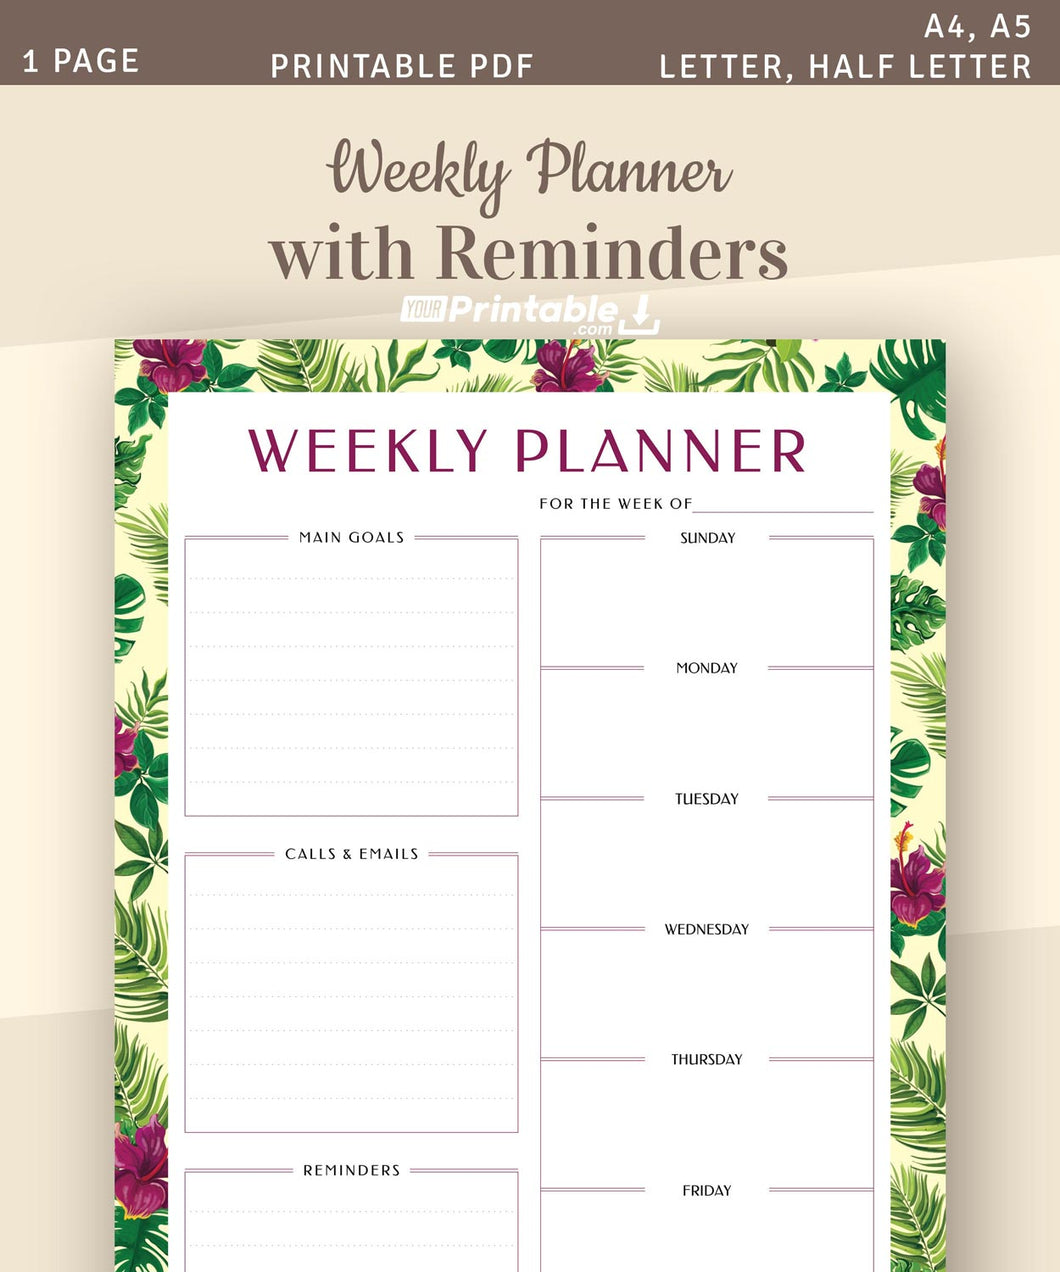 Undated Weekly Planner with Reminders - Digital Download PDF Template